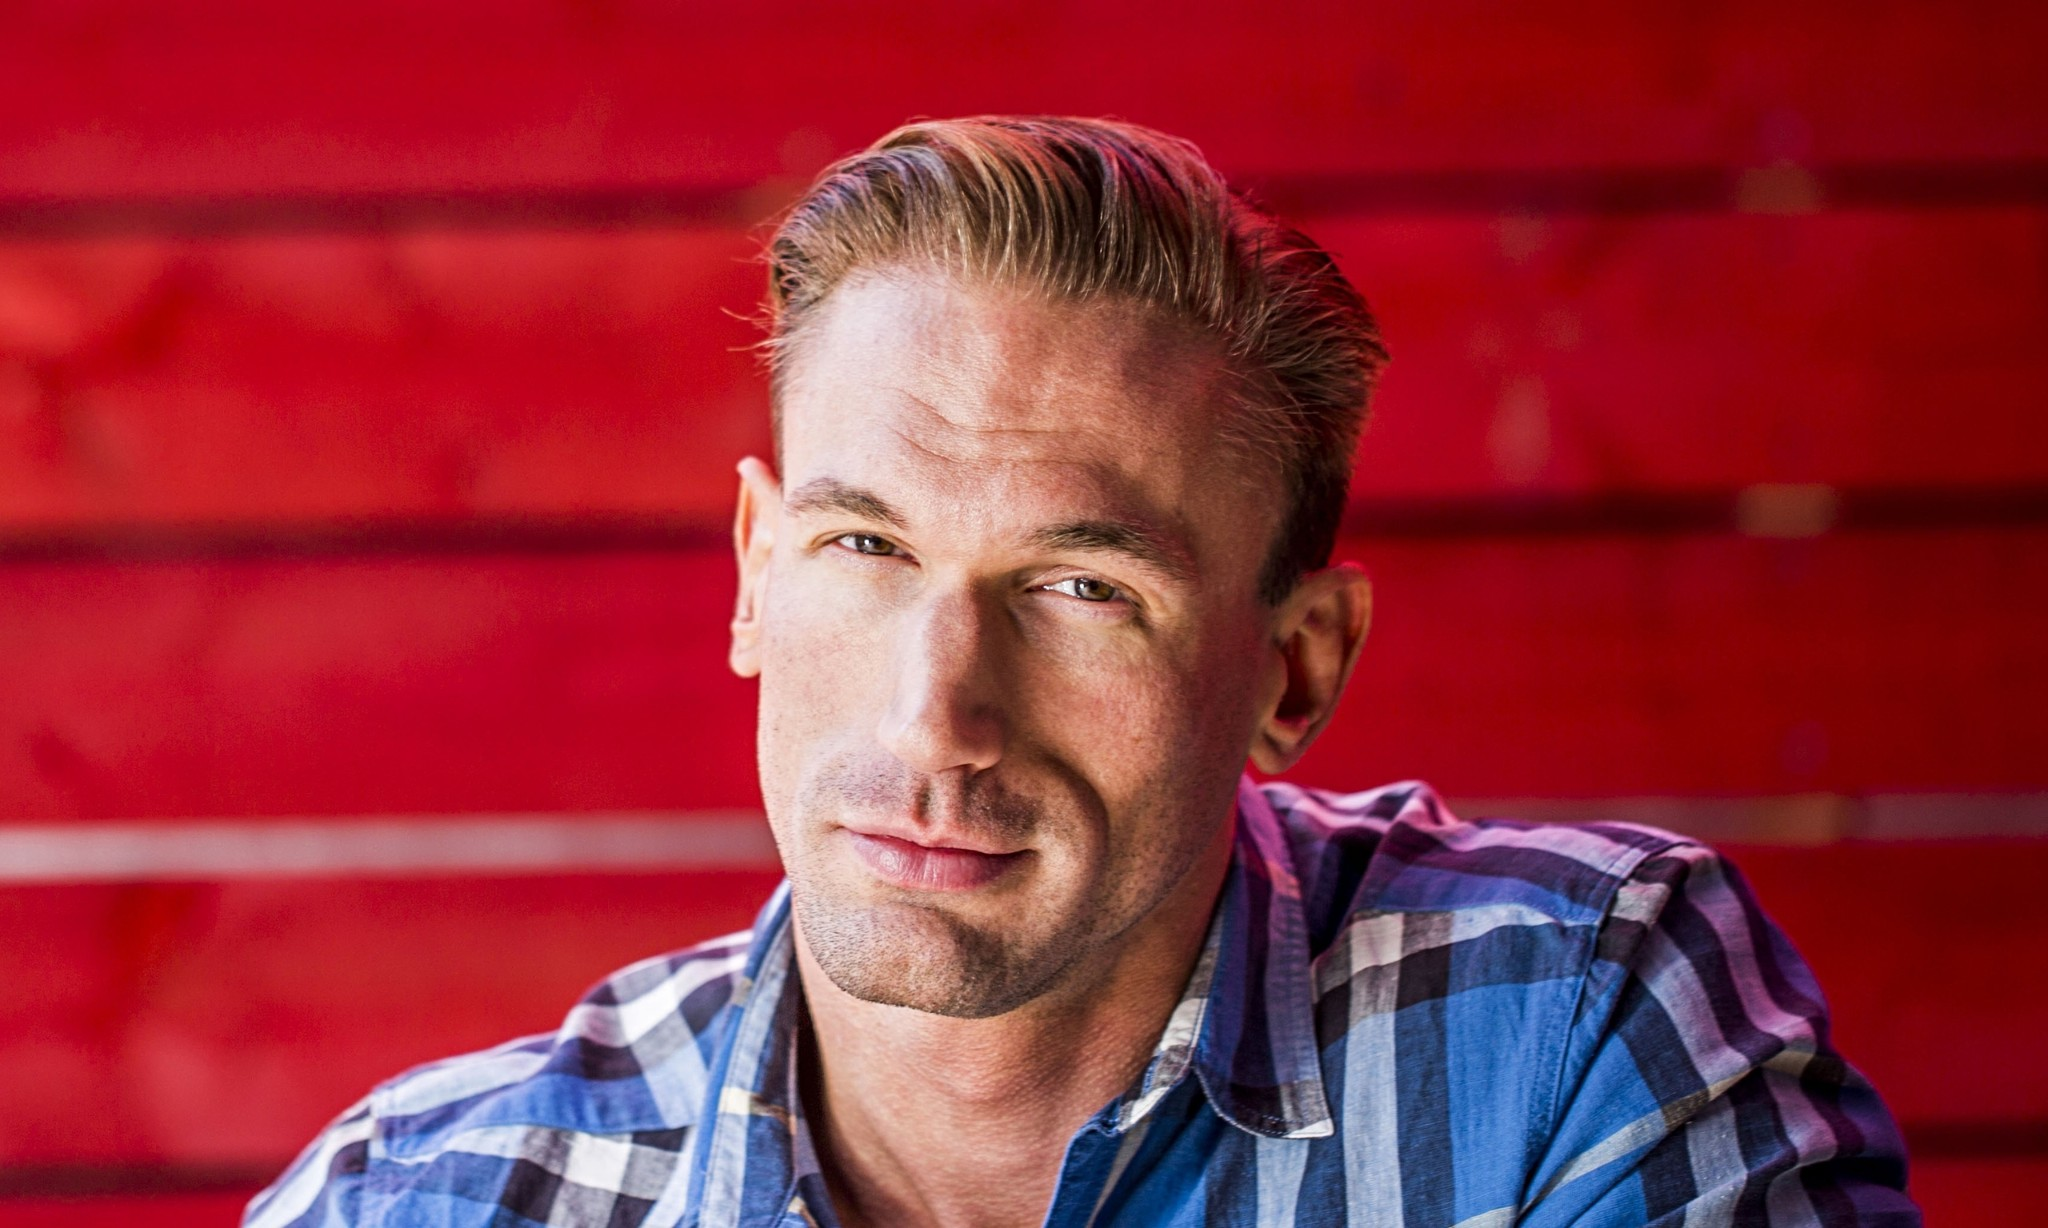 Christian Jessen: 'When I started giving advice on Twitter, other doctors gave me grief'